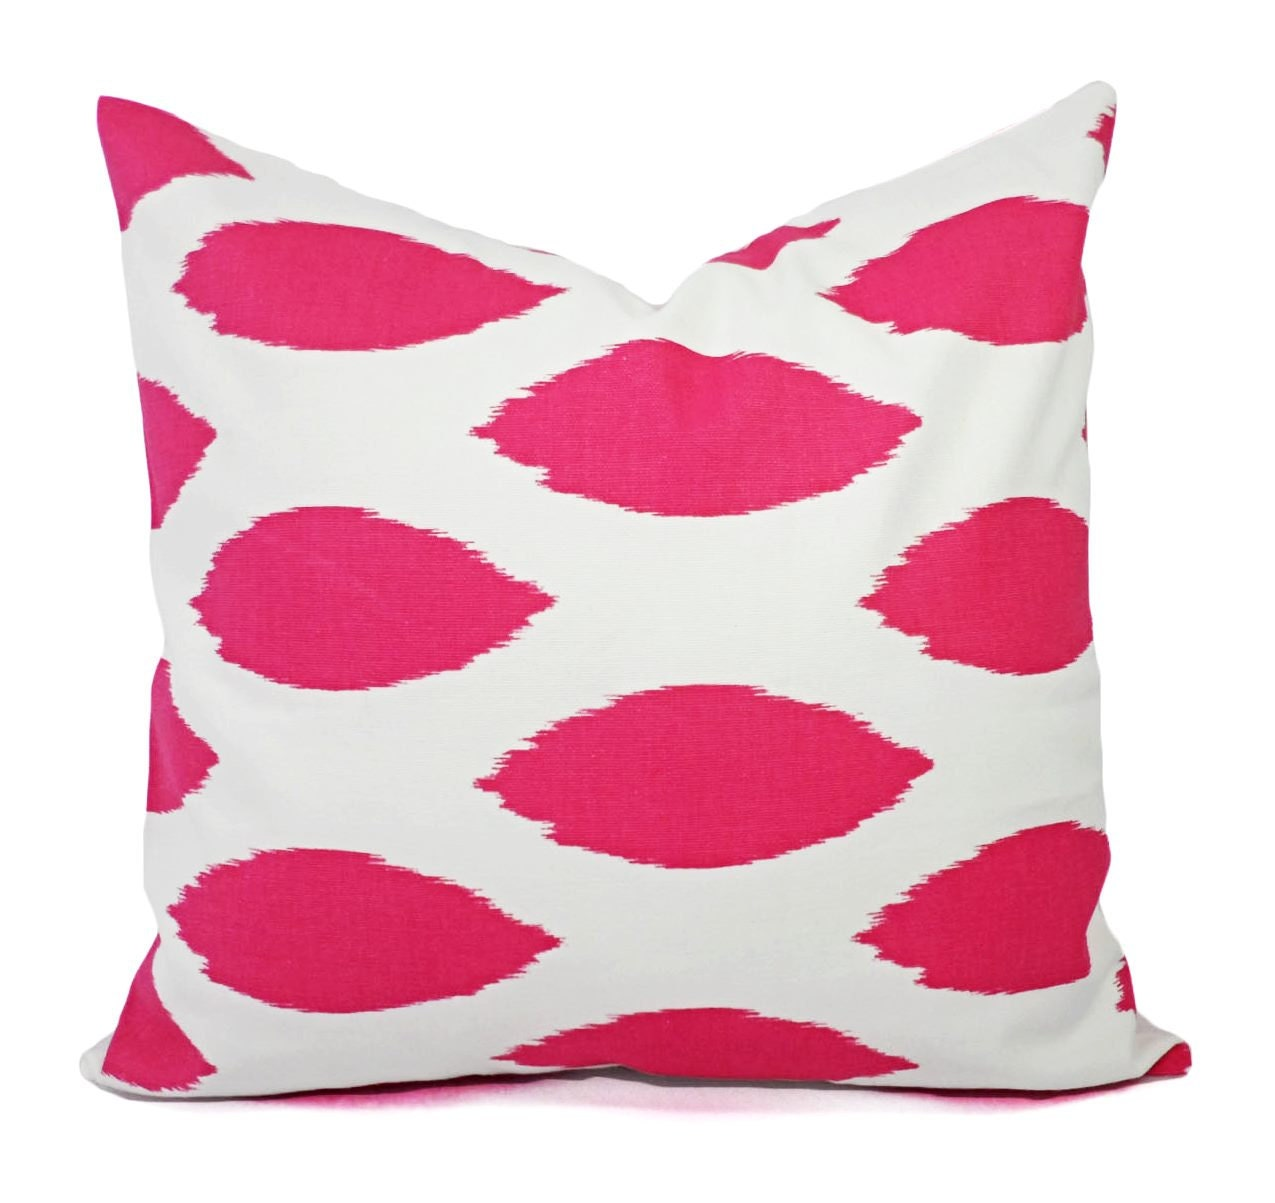 Two Decorative Pillow Covers Two Hot Pink and White Pillows